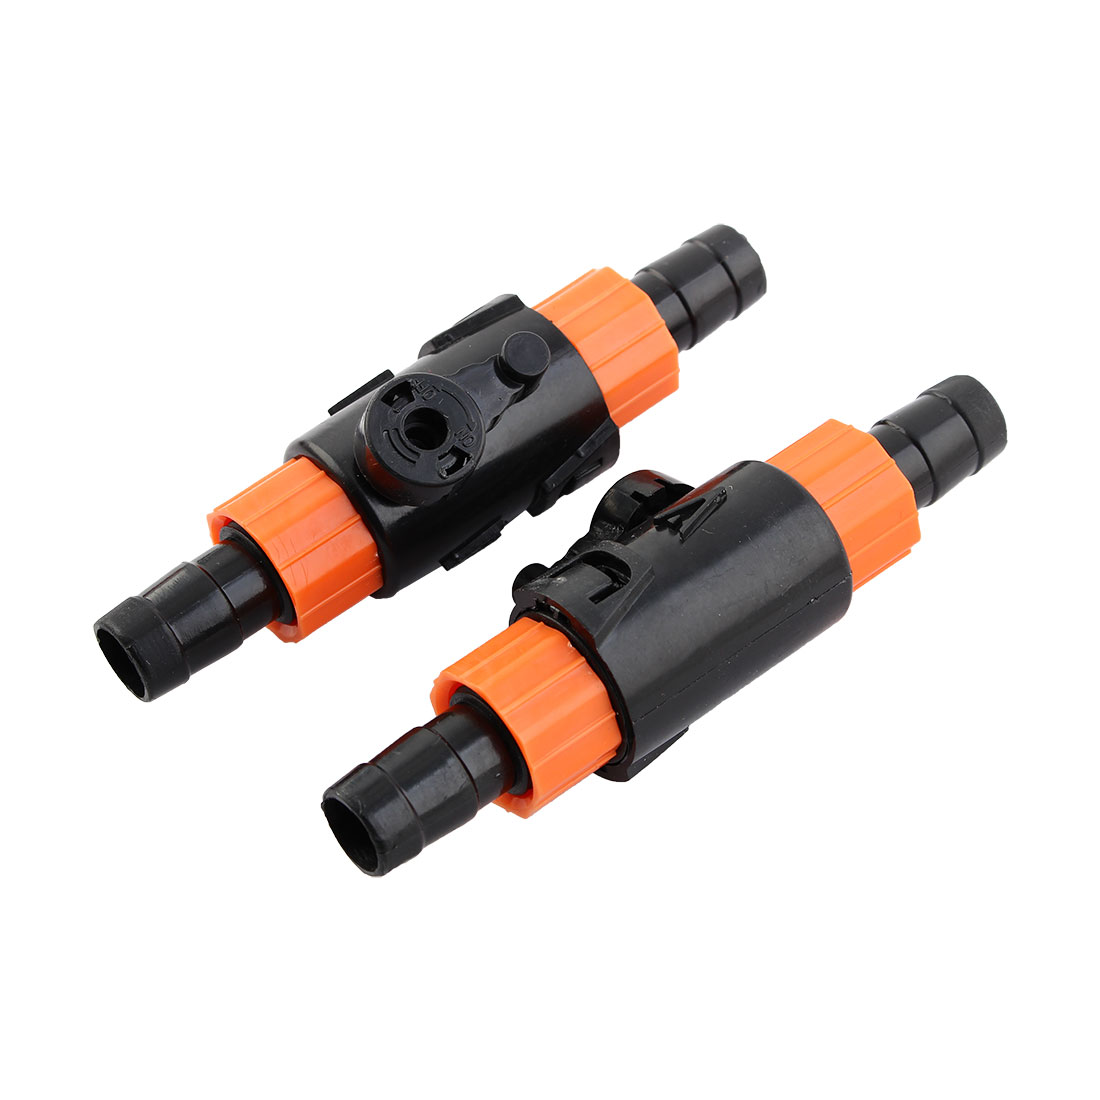 Aquarium Fish Tank Water Flow Control Valve Hose Pipe Quick Connector Adapter 2pcs